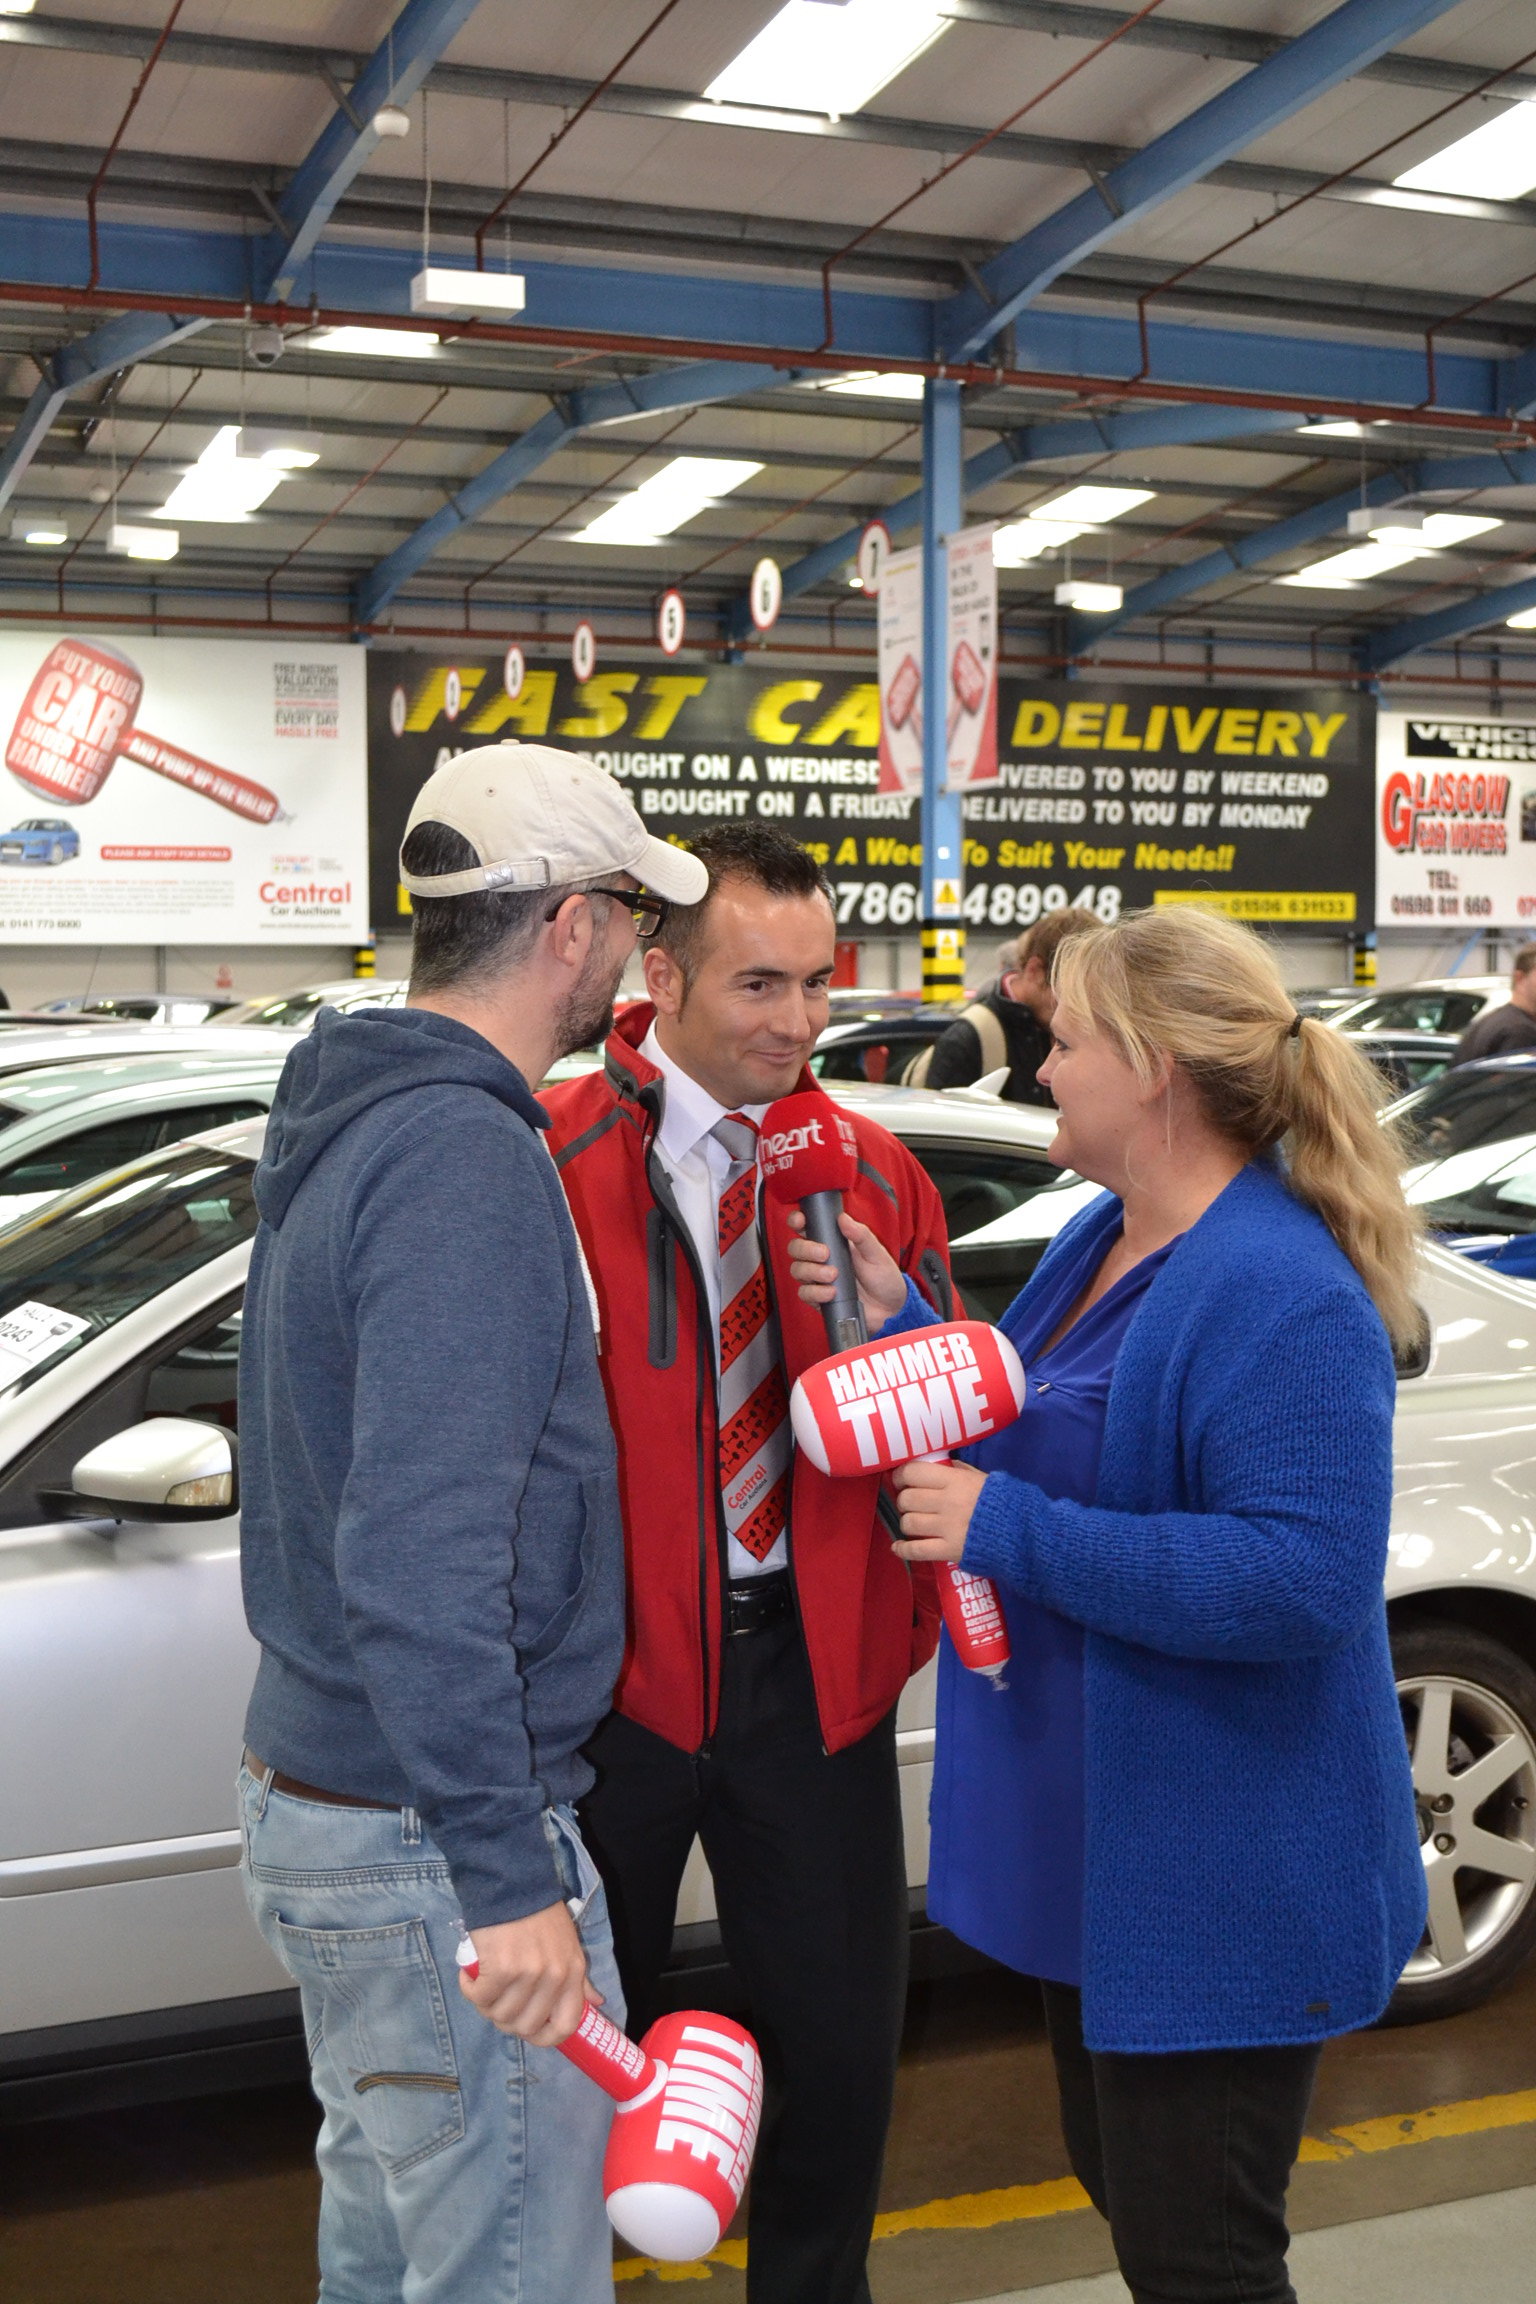 central certainly made some noise today for central car auctions its heart angels charity donation collectors and gave an impromptu interview to the star presenters on the high paced verbal technique of auctioneering